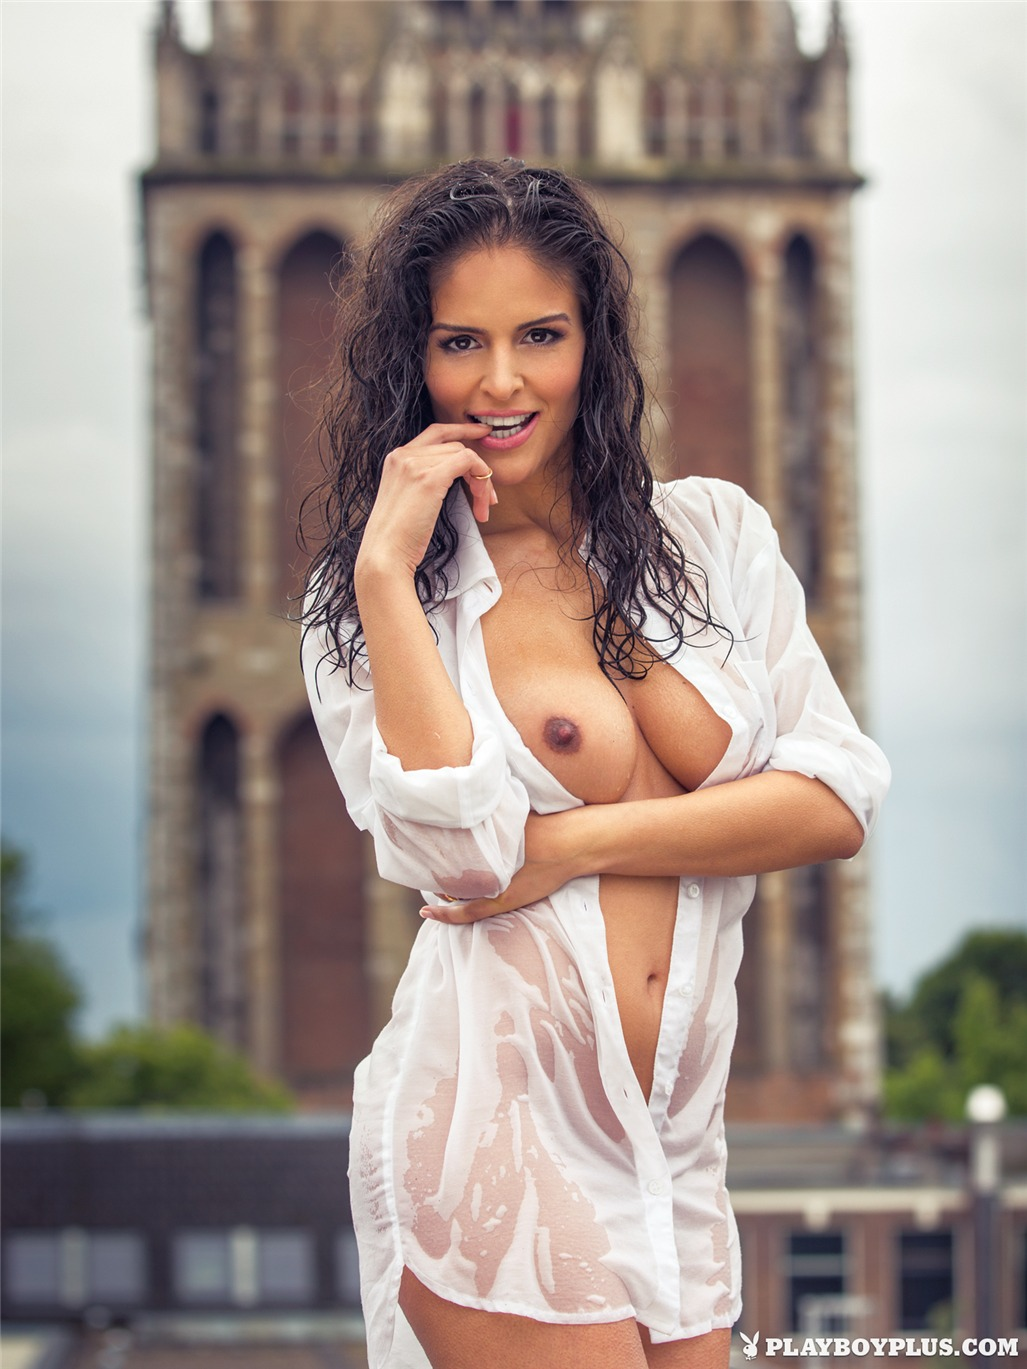 Девушка месяца Jade - Playboy Netherlands july 2013 playmate